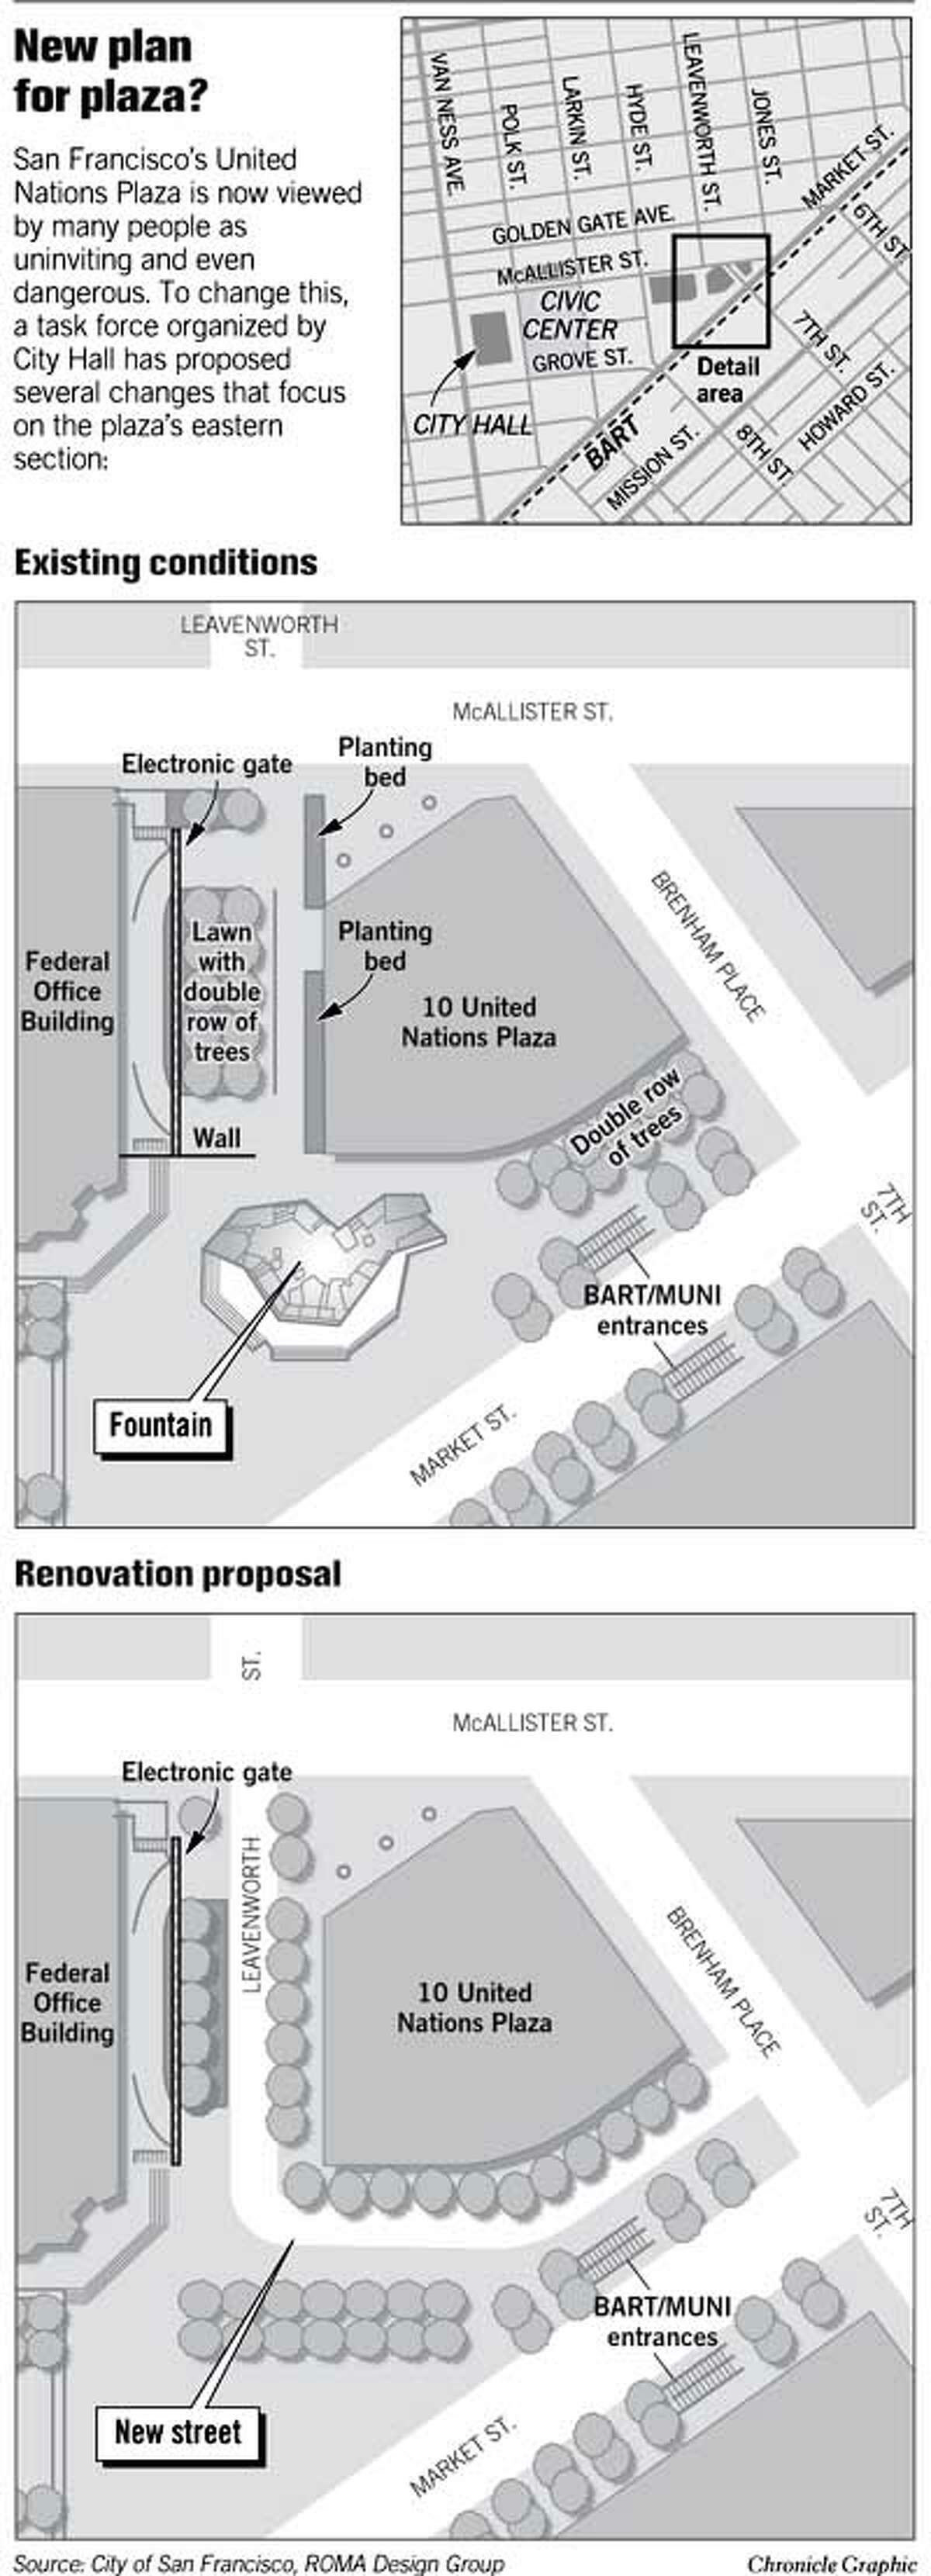 New Plan for Plaza? Chronicle Graphic